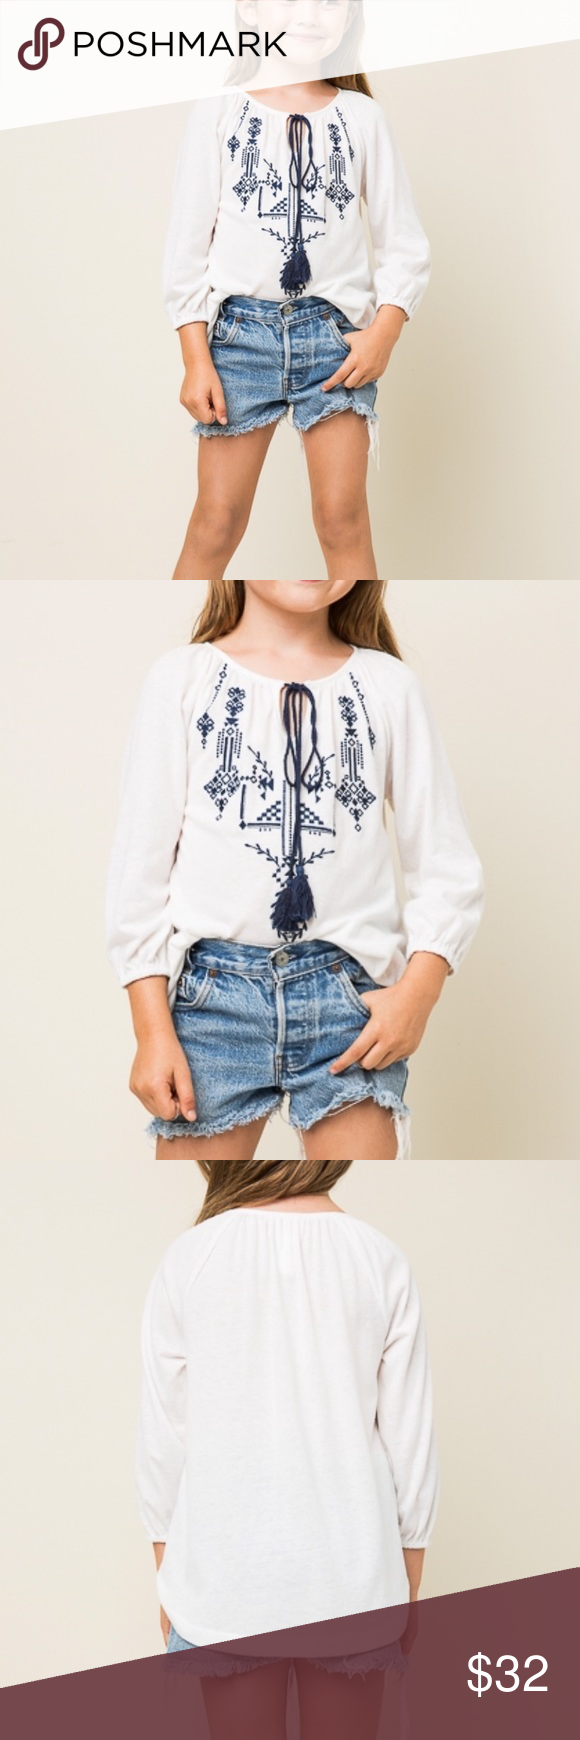 🎉Host Pick 💙 Embroidered Cotton Tunic 💙 How cute is this embroidered cotton tunic? ✌🏽️ Made with 100% Cotton. 🌵 No trades. ❌ Not Free People. 💛 BUNDLE & SAVE Free People Shirts & Tops Blouses